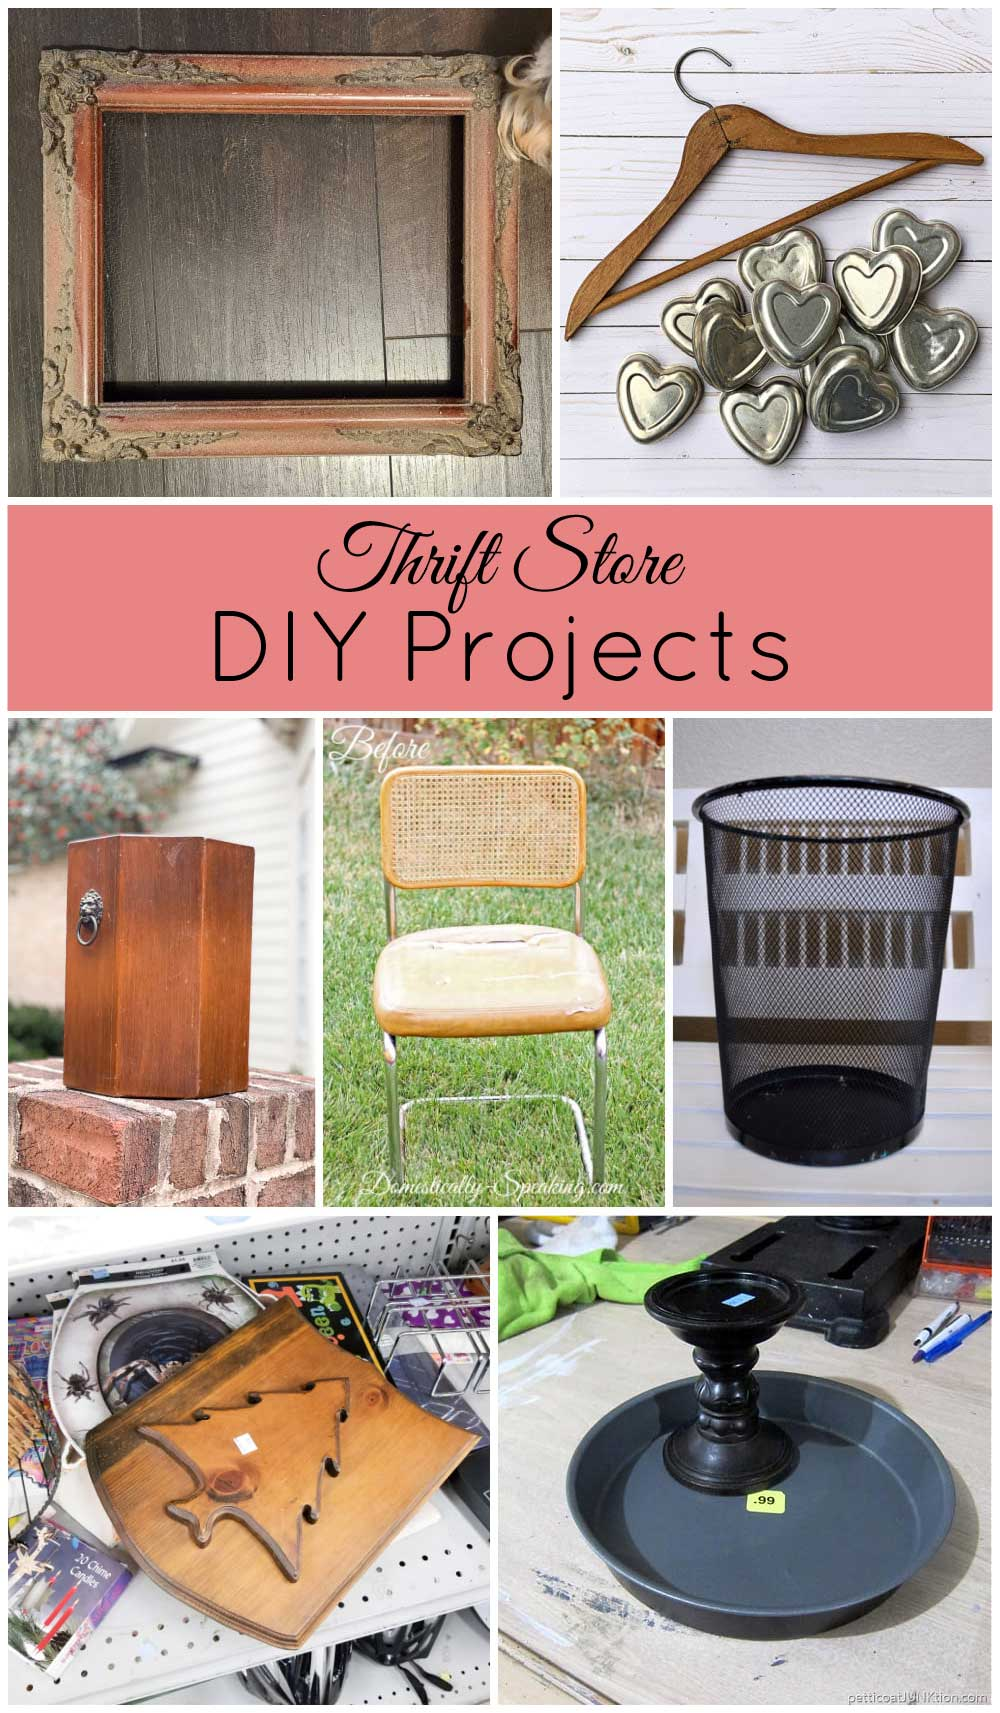 thrift store DIY projects